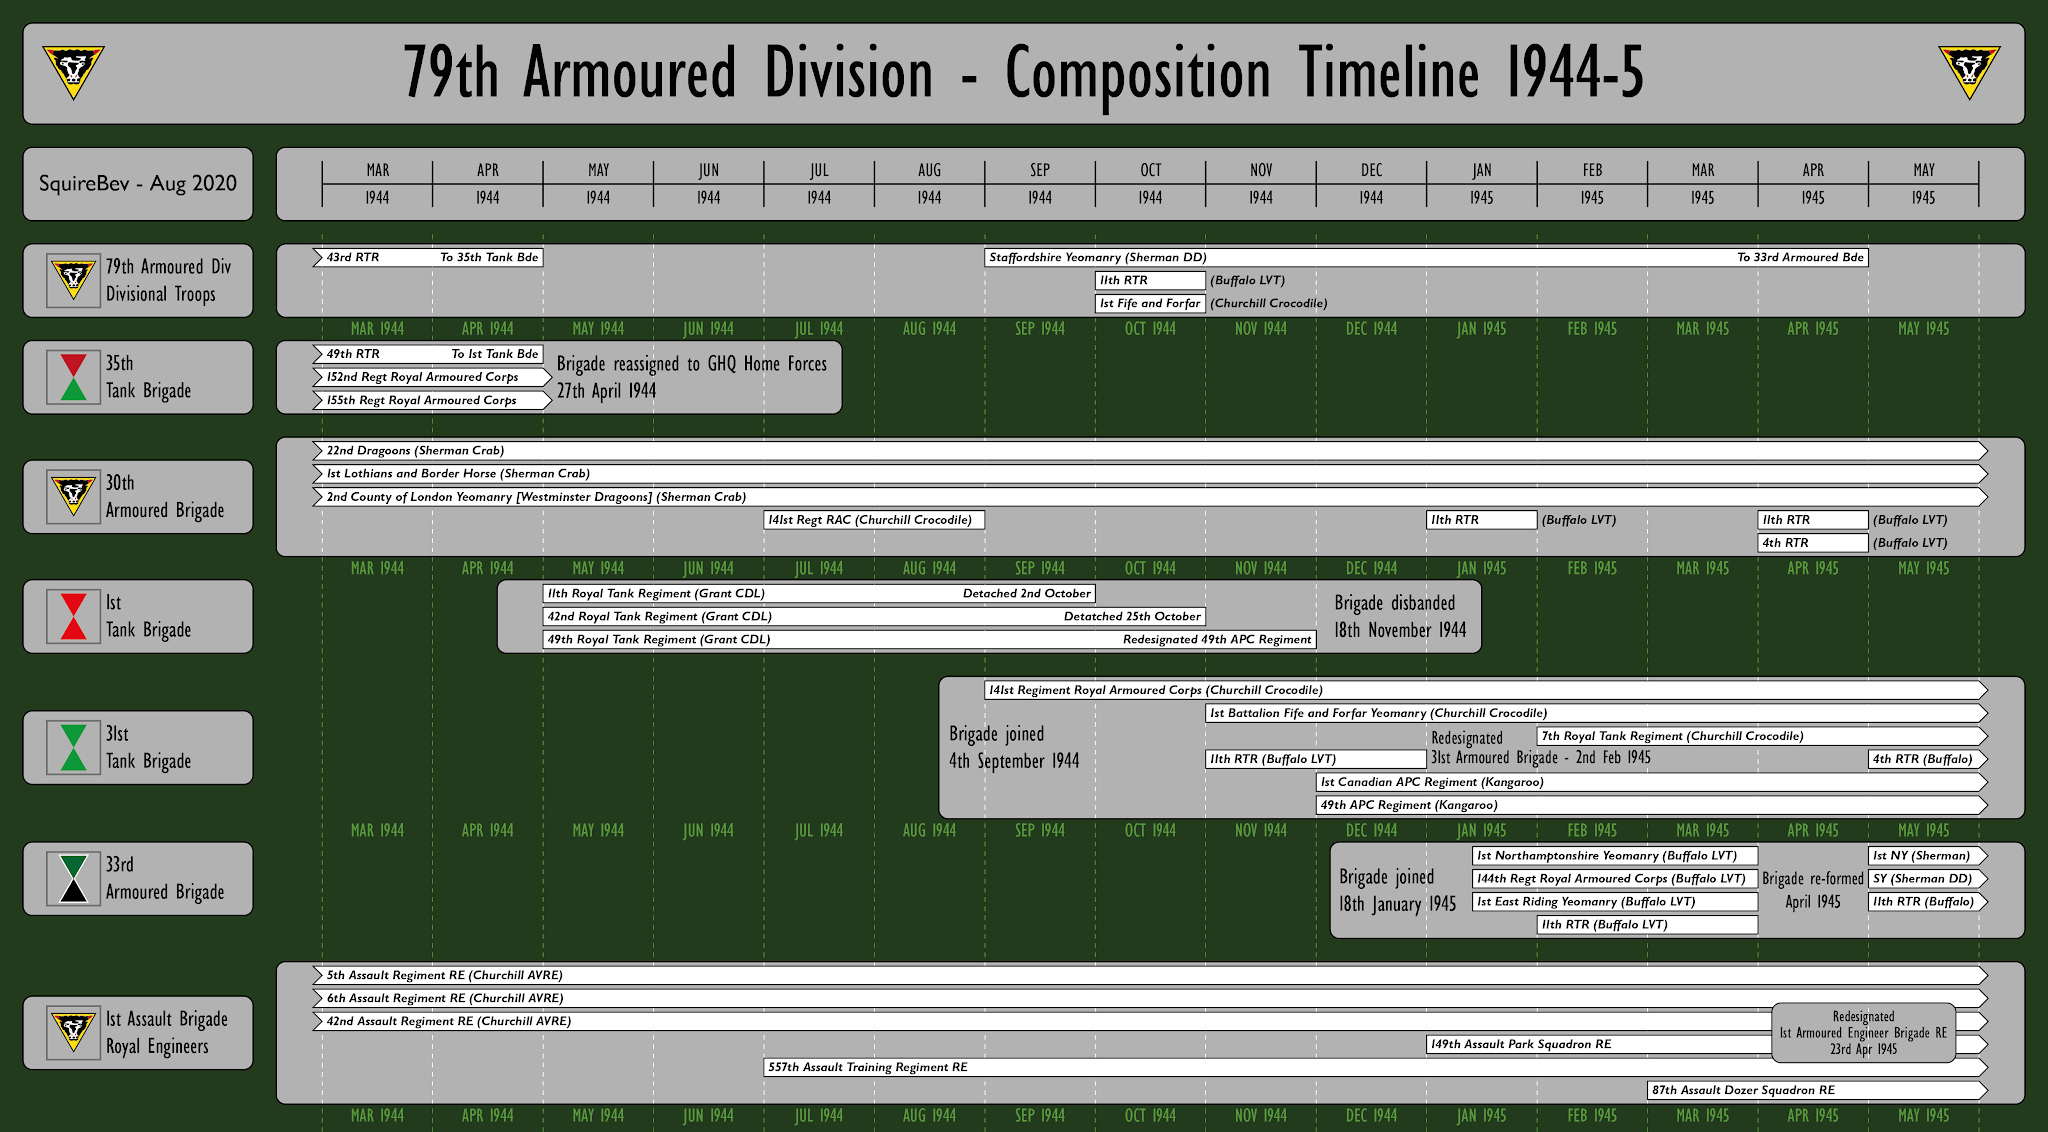 UK+-+79th+Armoured+Division+Timeline-01.